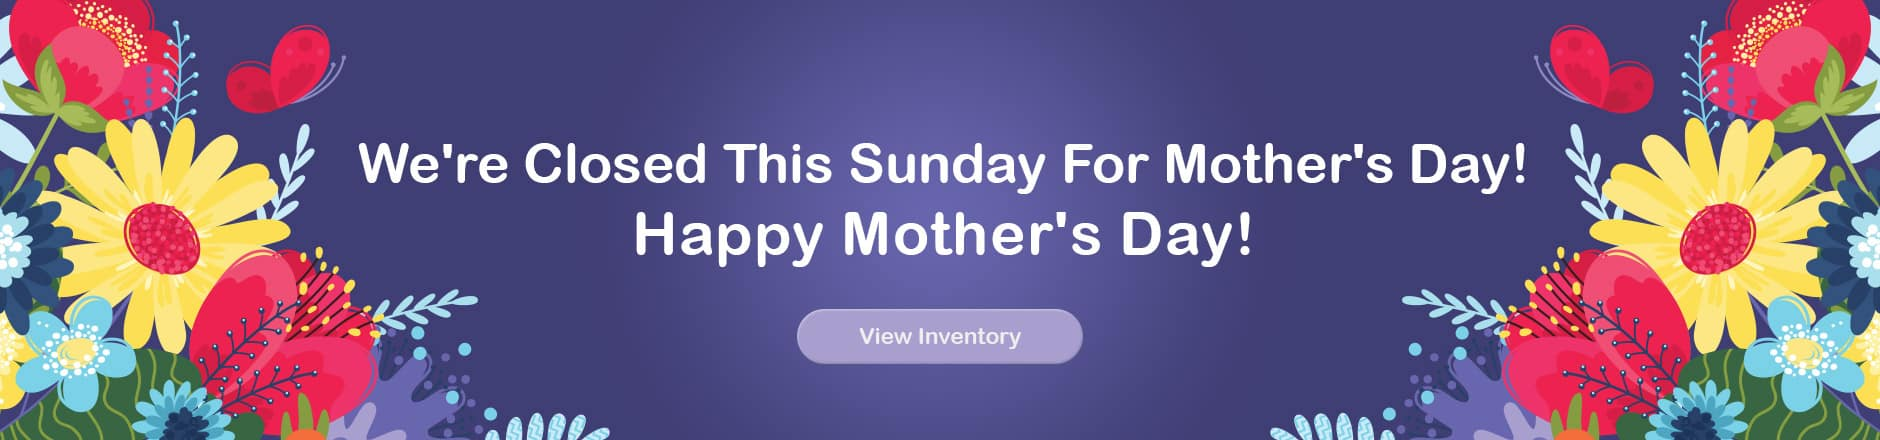 slide-mothers-day-MAY-21